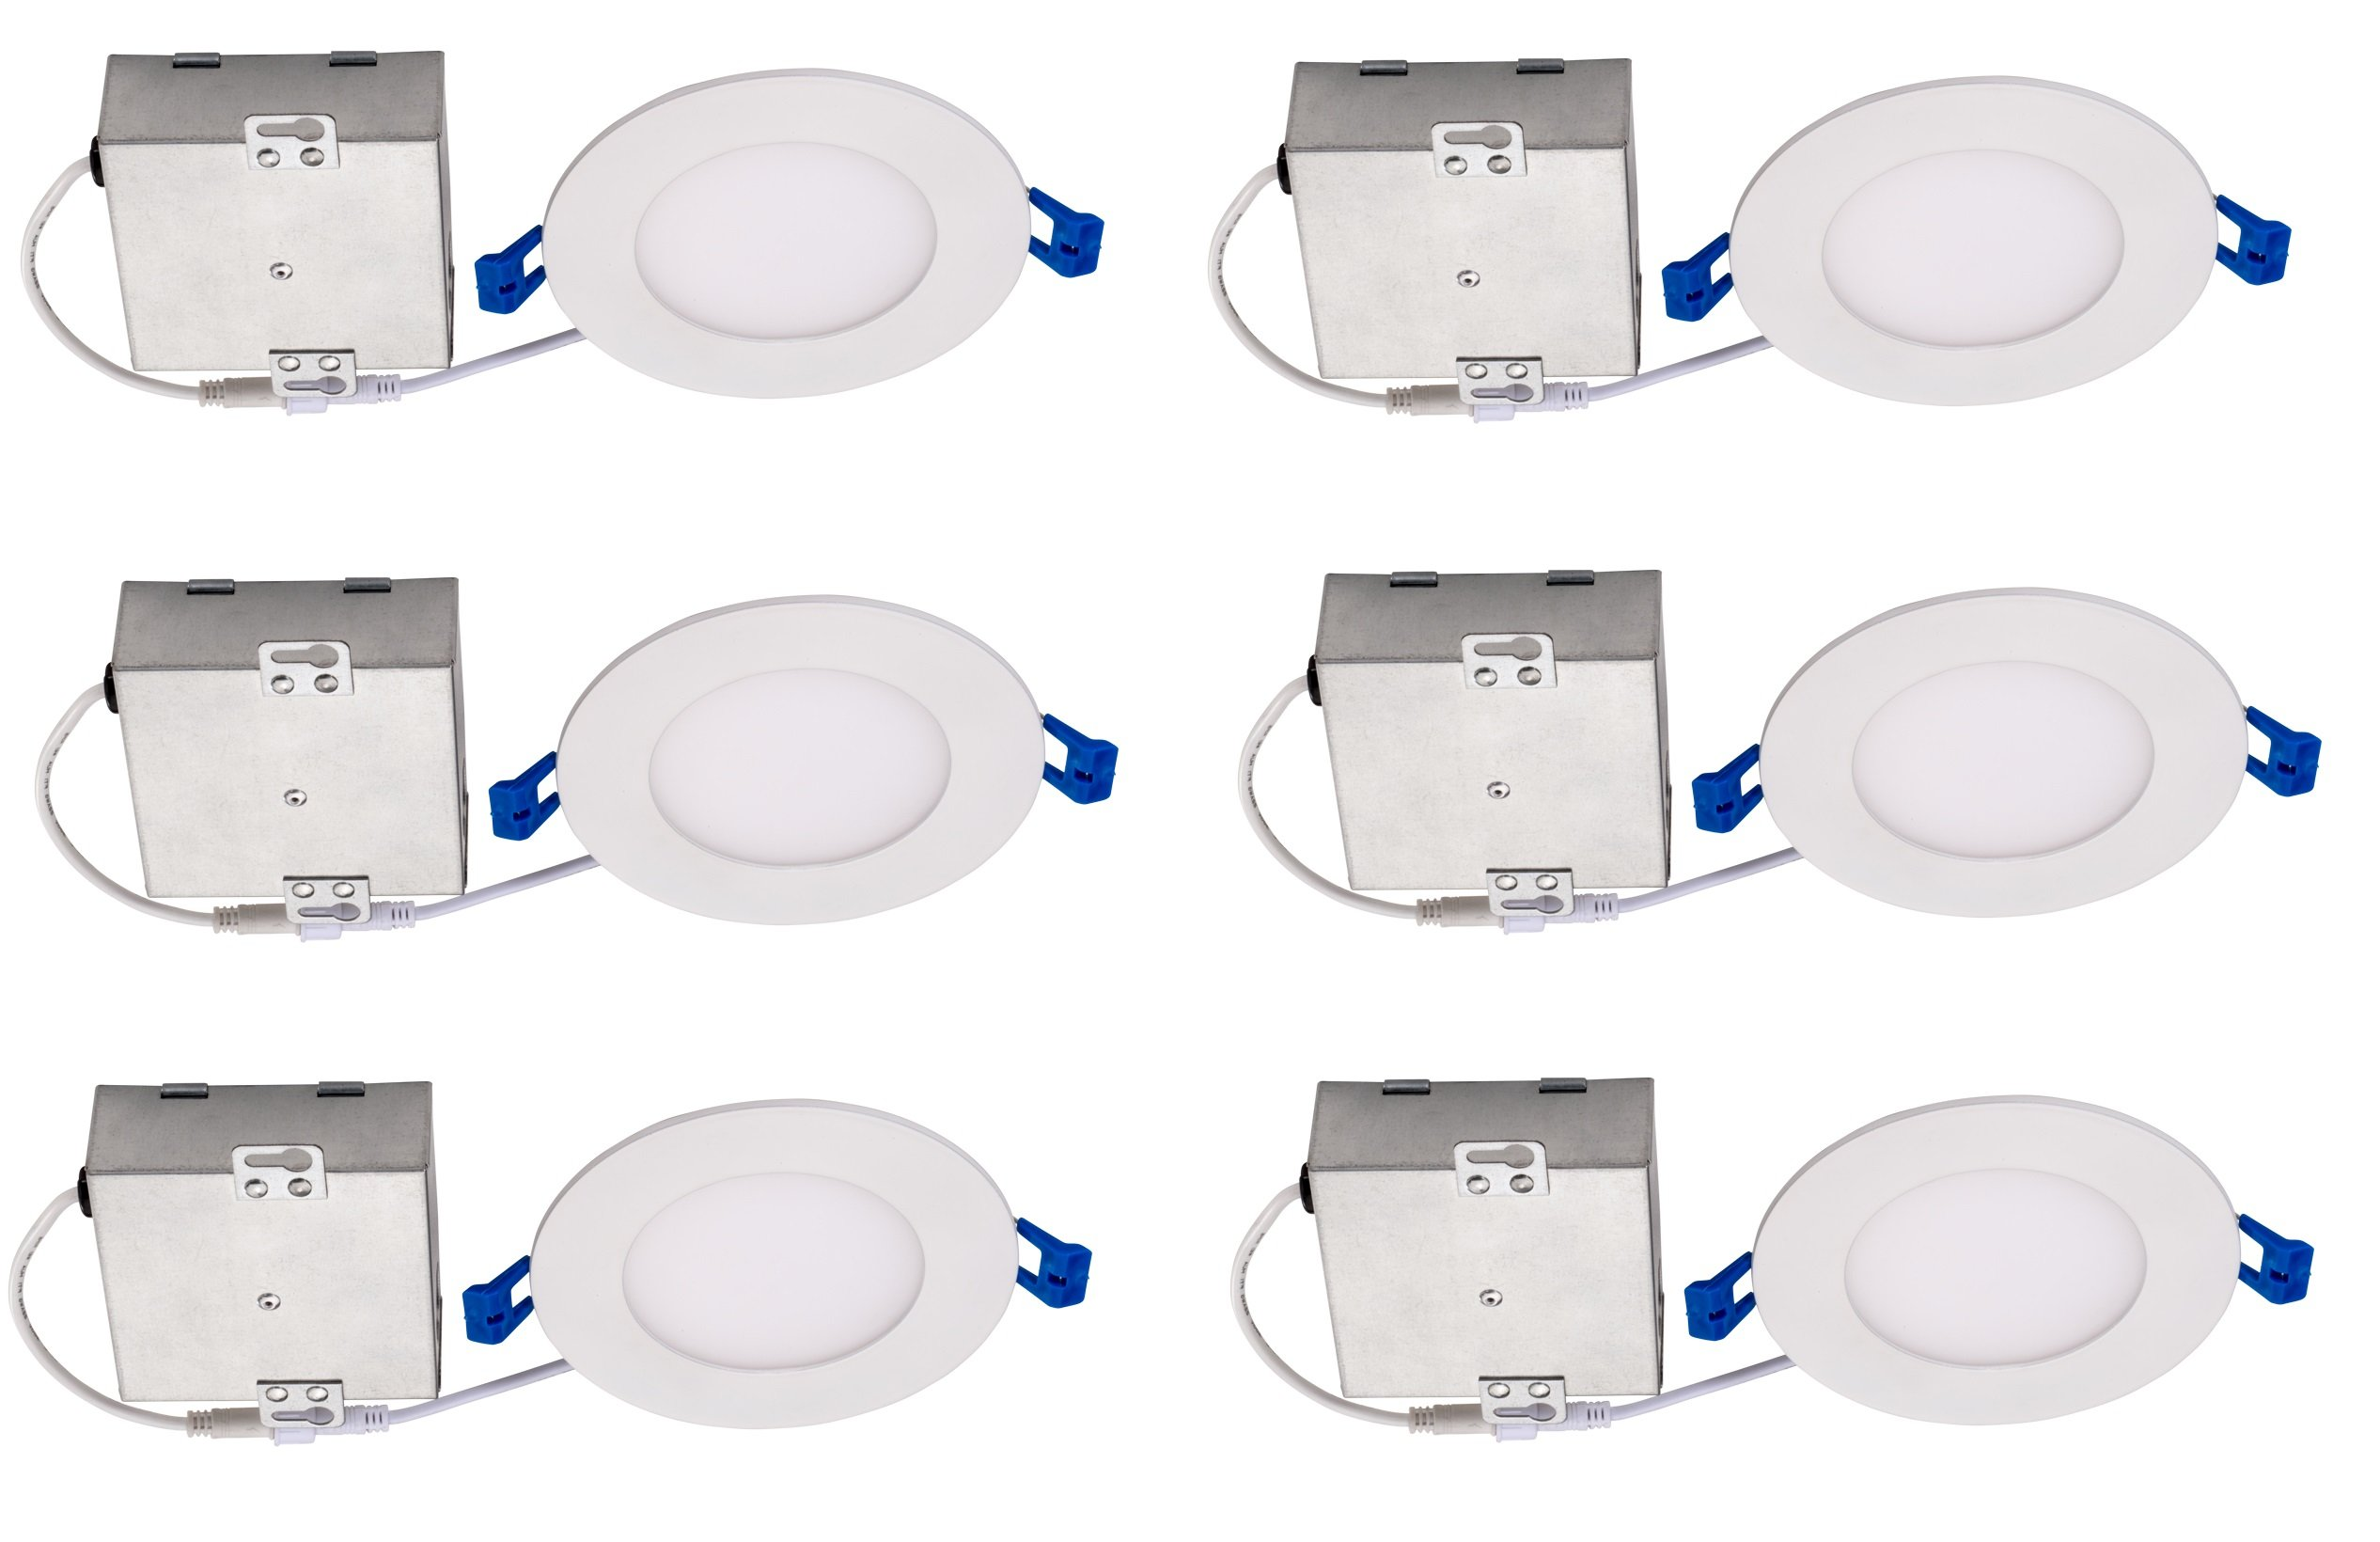 Topaz Lighting (Pack of 6) 77229 9W Slim 4'' Dimmable Recessed Ceiling Downlight, 3000K, White, Easy to Install, Save Time and Money, Energy Efficient LED Lighting